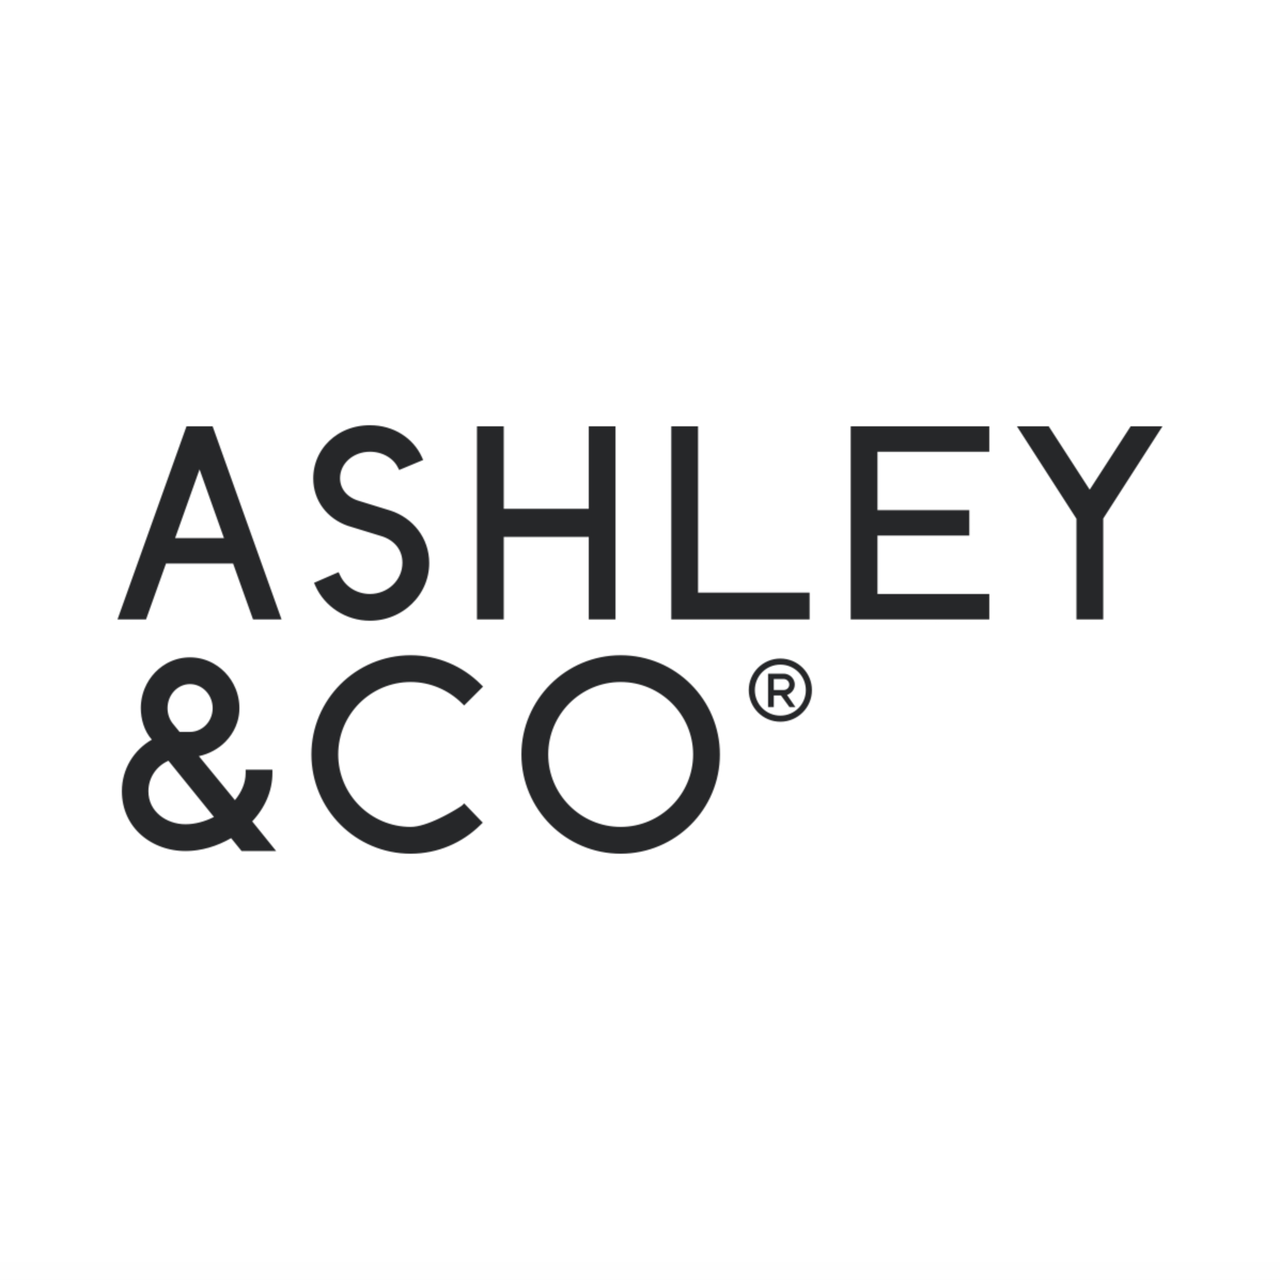 ASHLEY & CO.